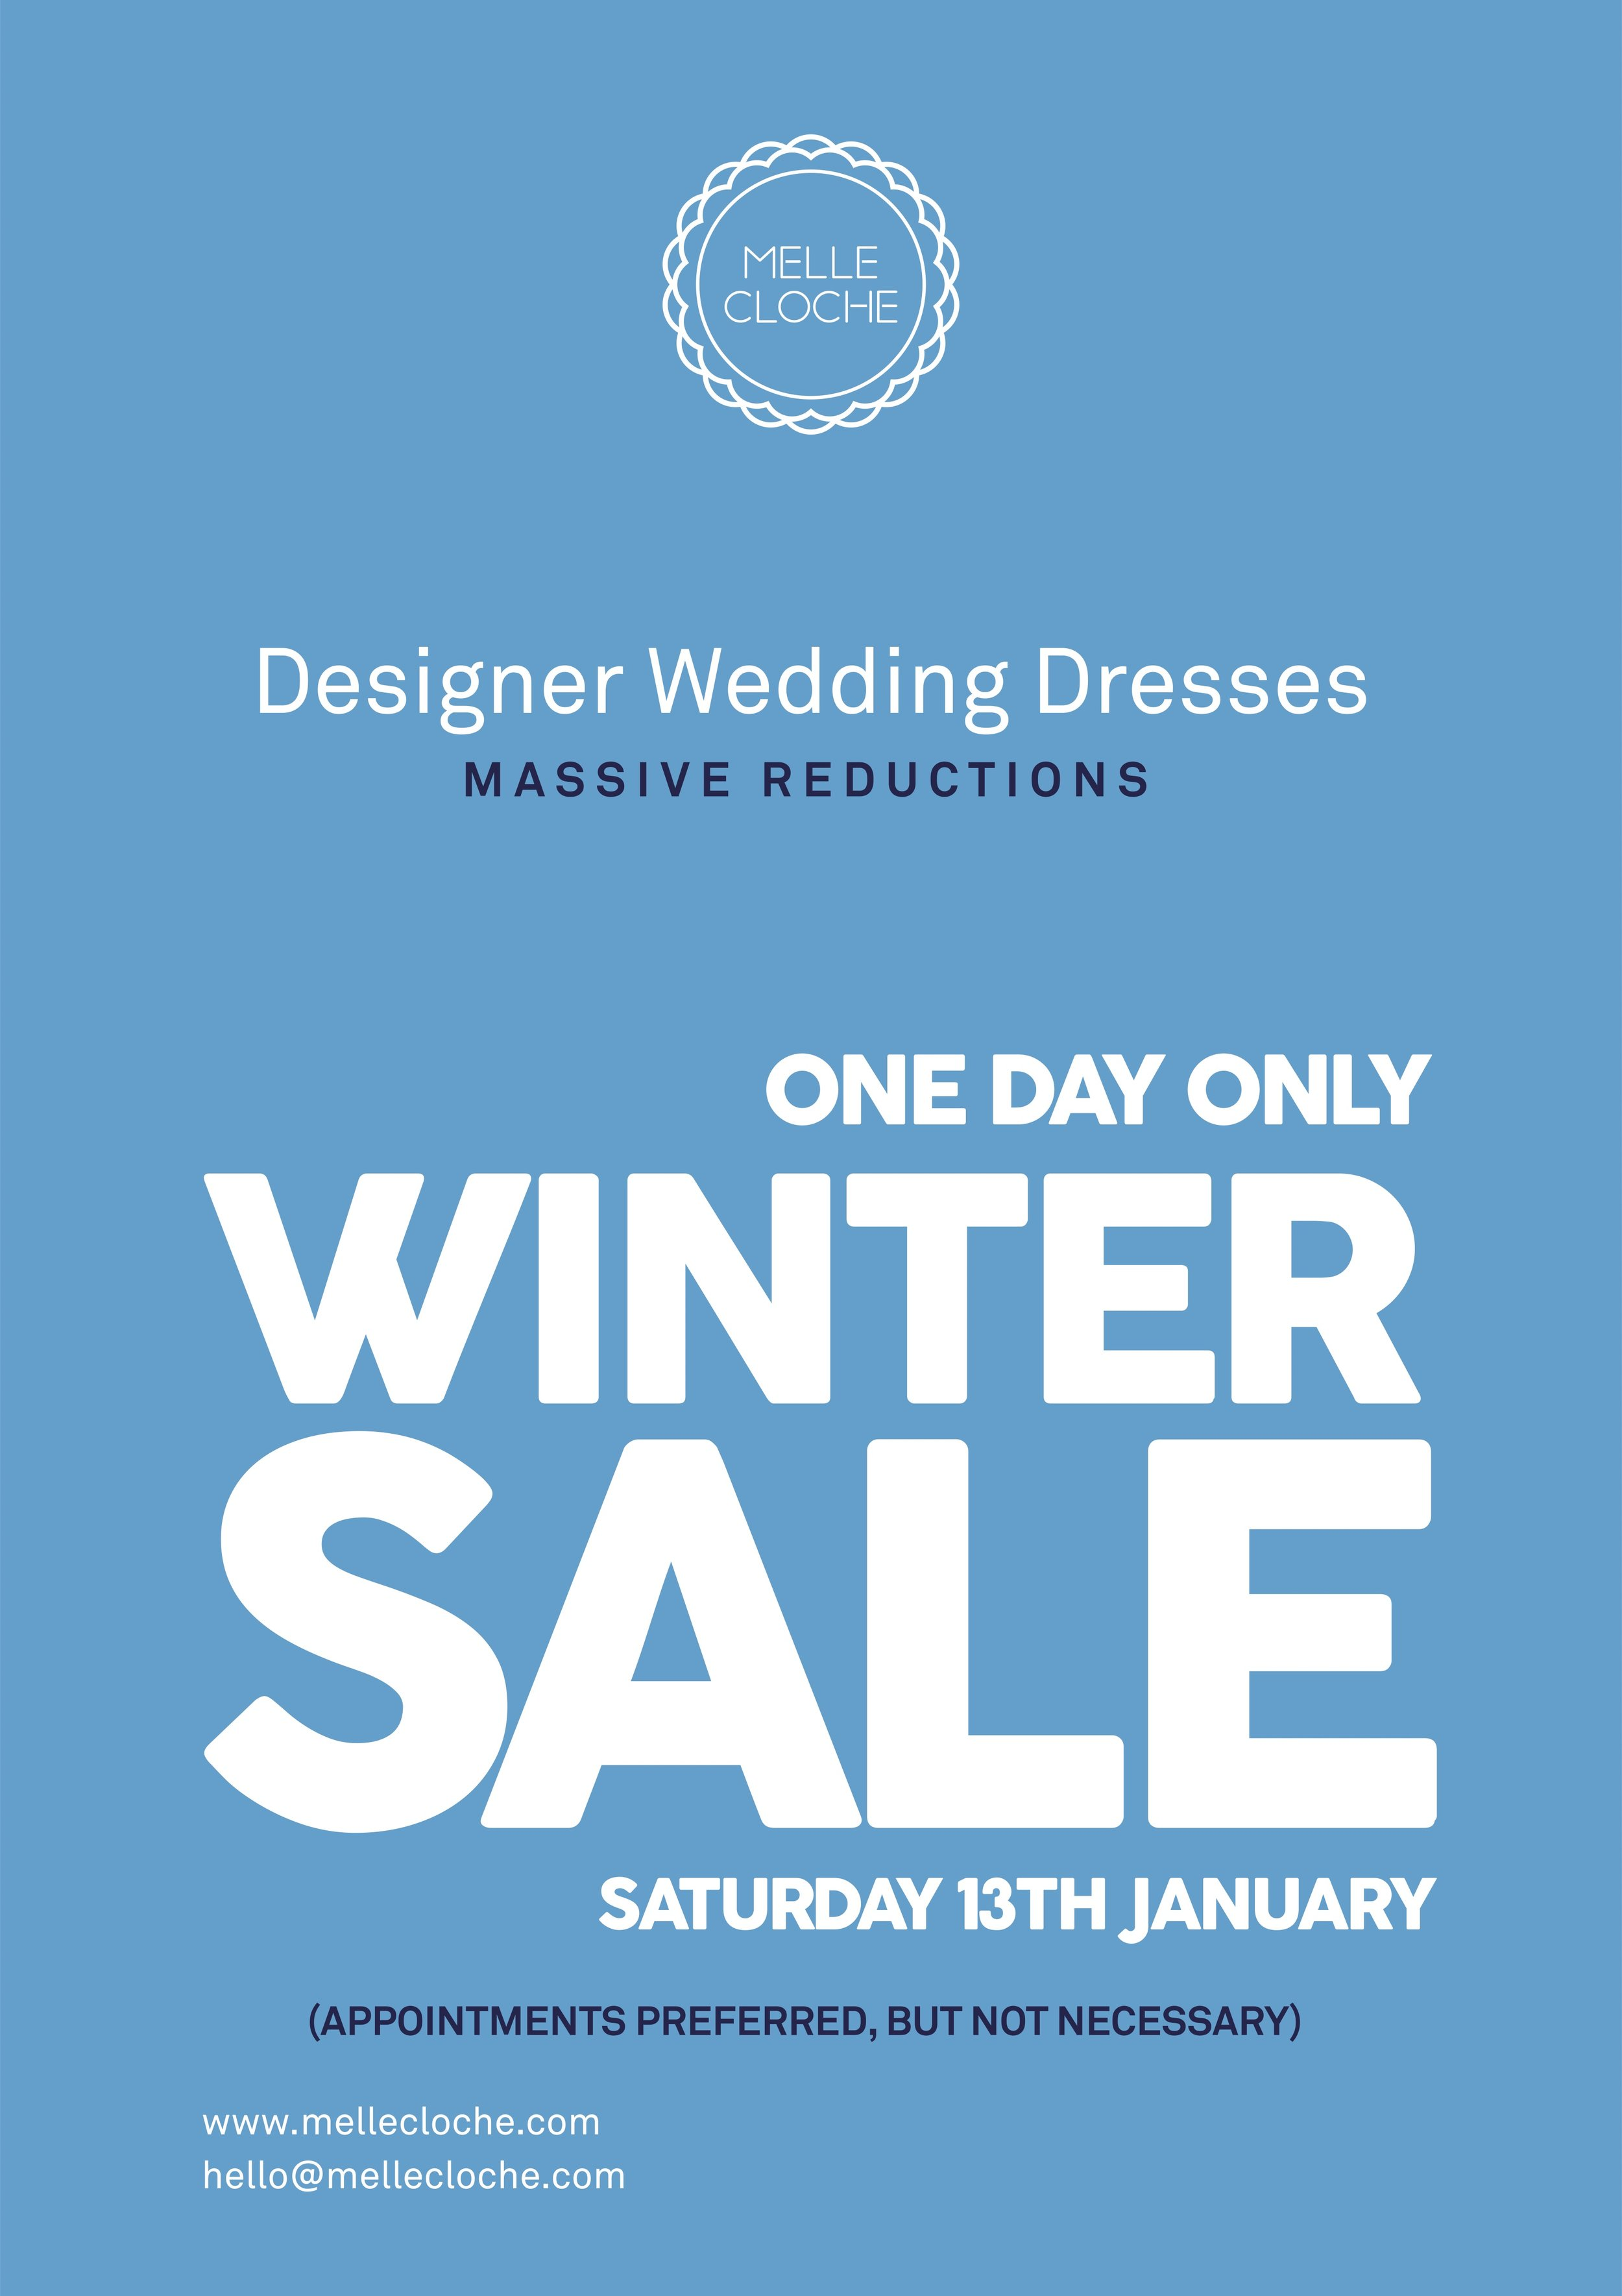 Winter Sale Poster-3 copy.jpg